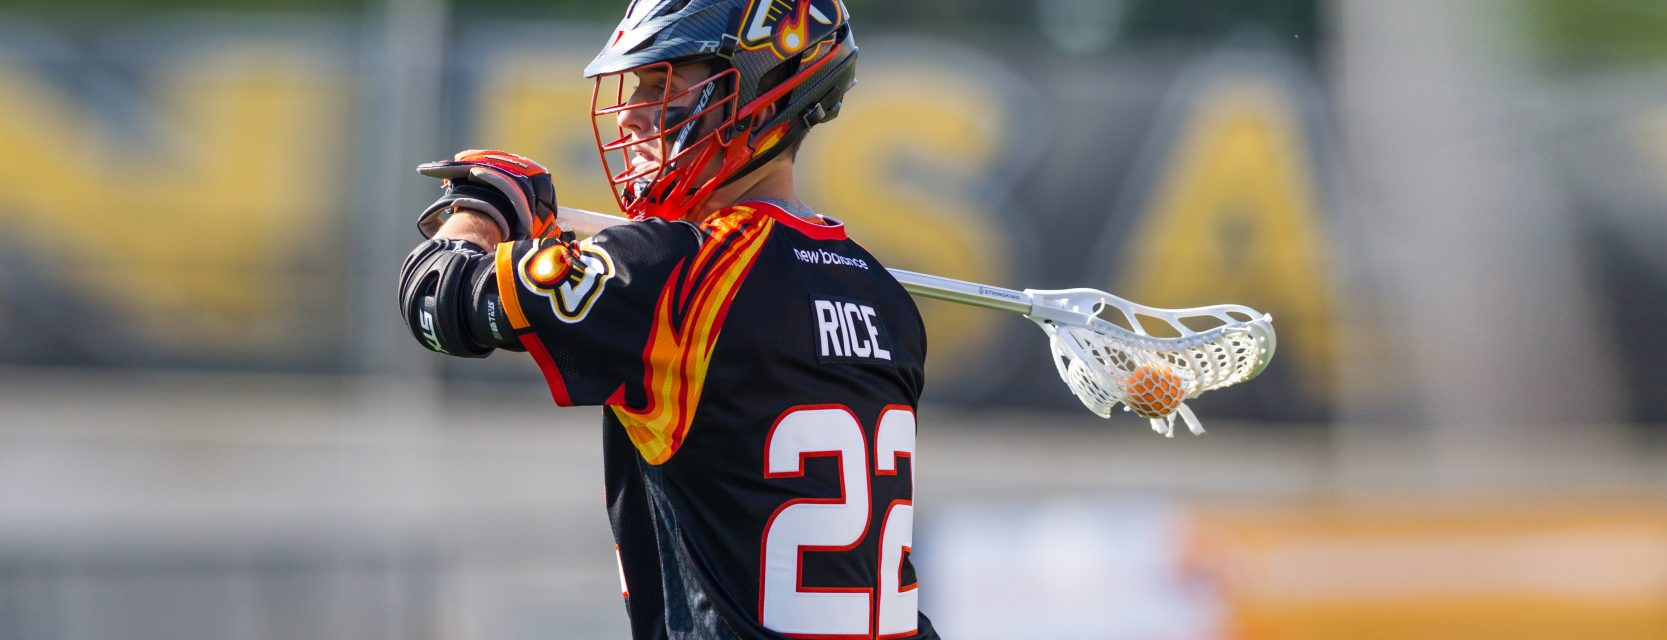 StringKing Complete Plus Lacrosse Stick - Kevin Rice